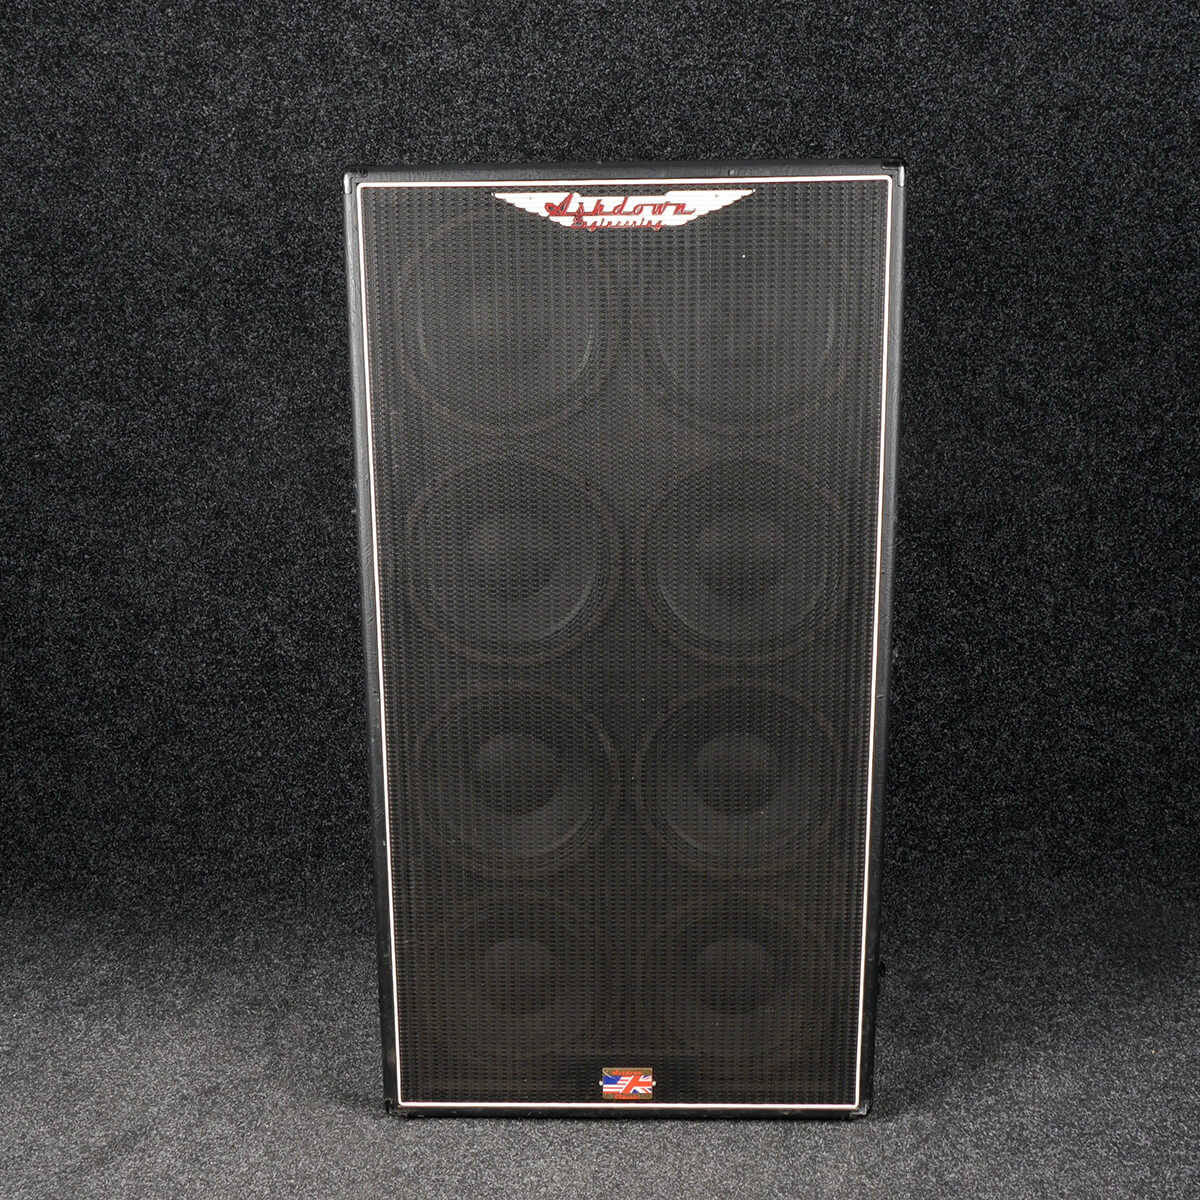 Ashdown 8x10 Cab USA 810 1200W **COLLECTION ONLY** 2nd Hand